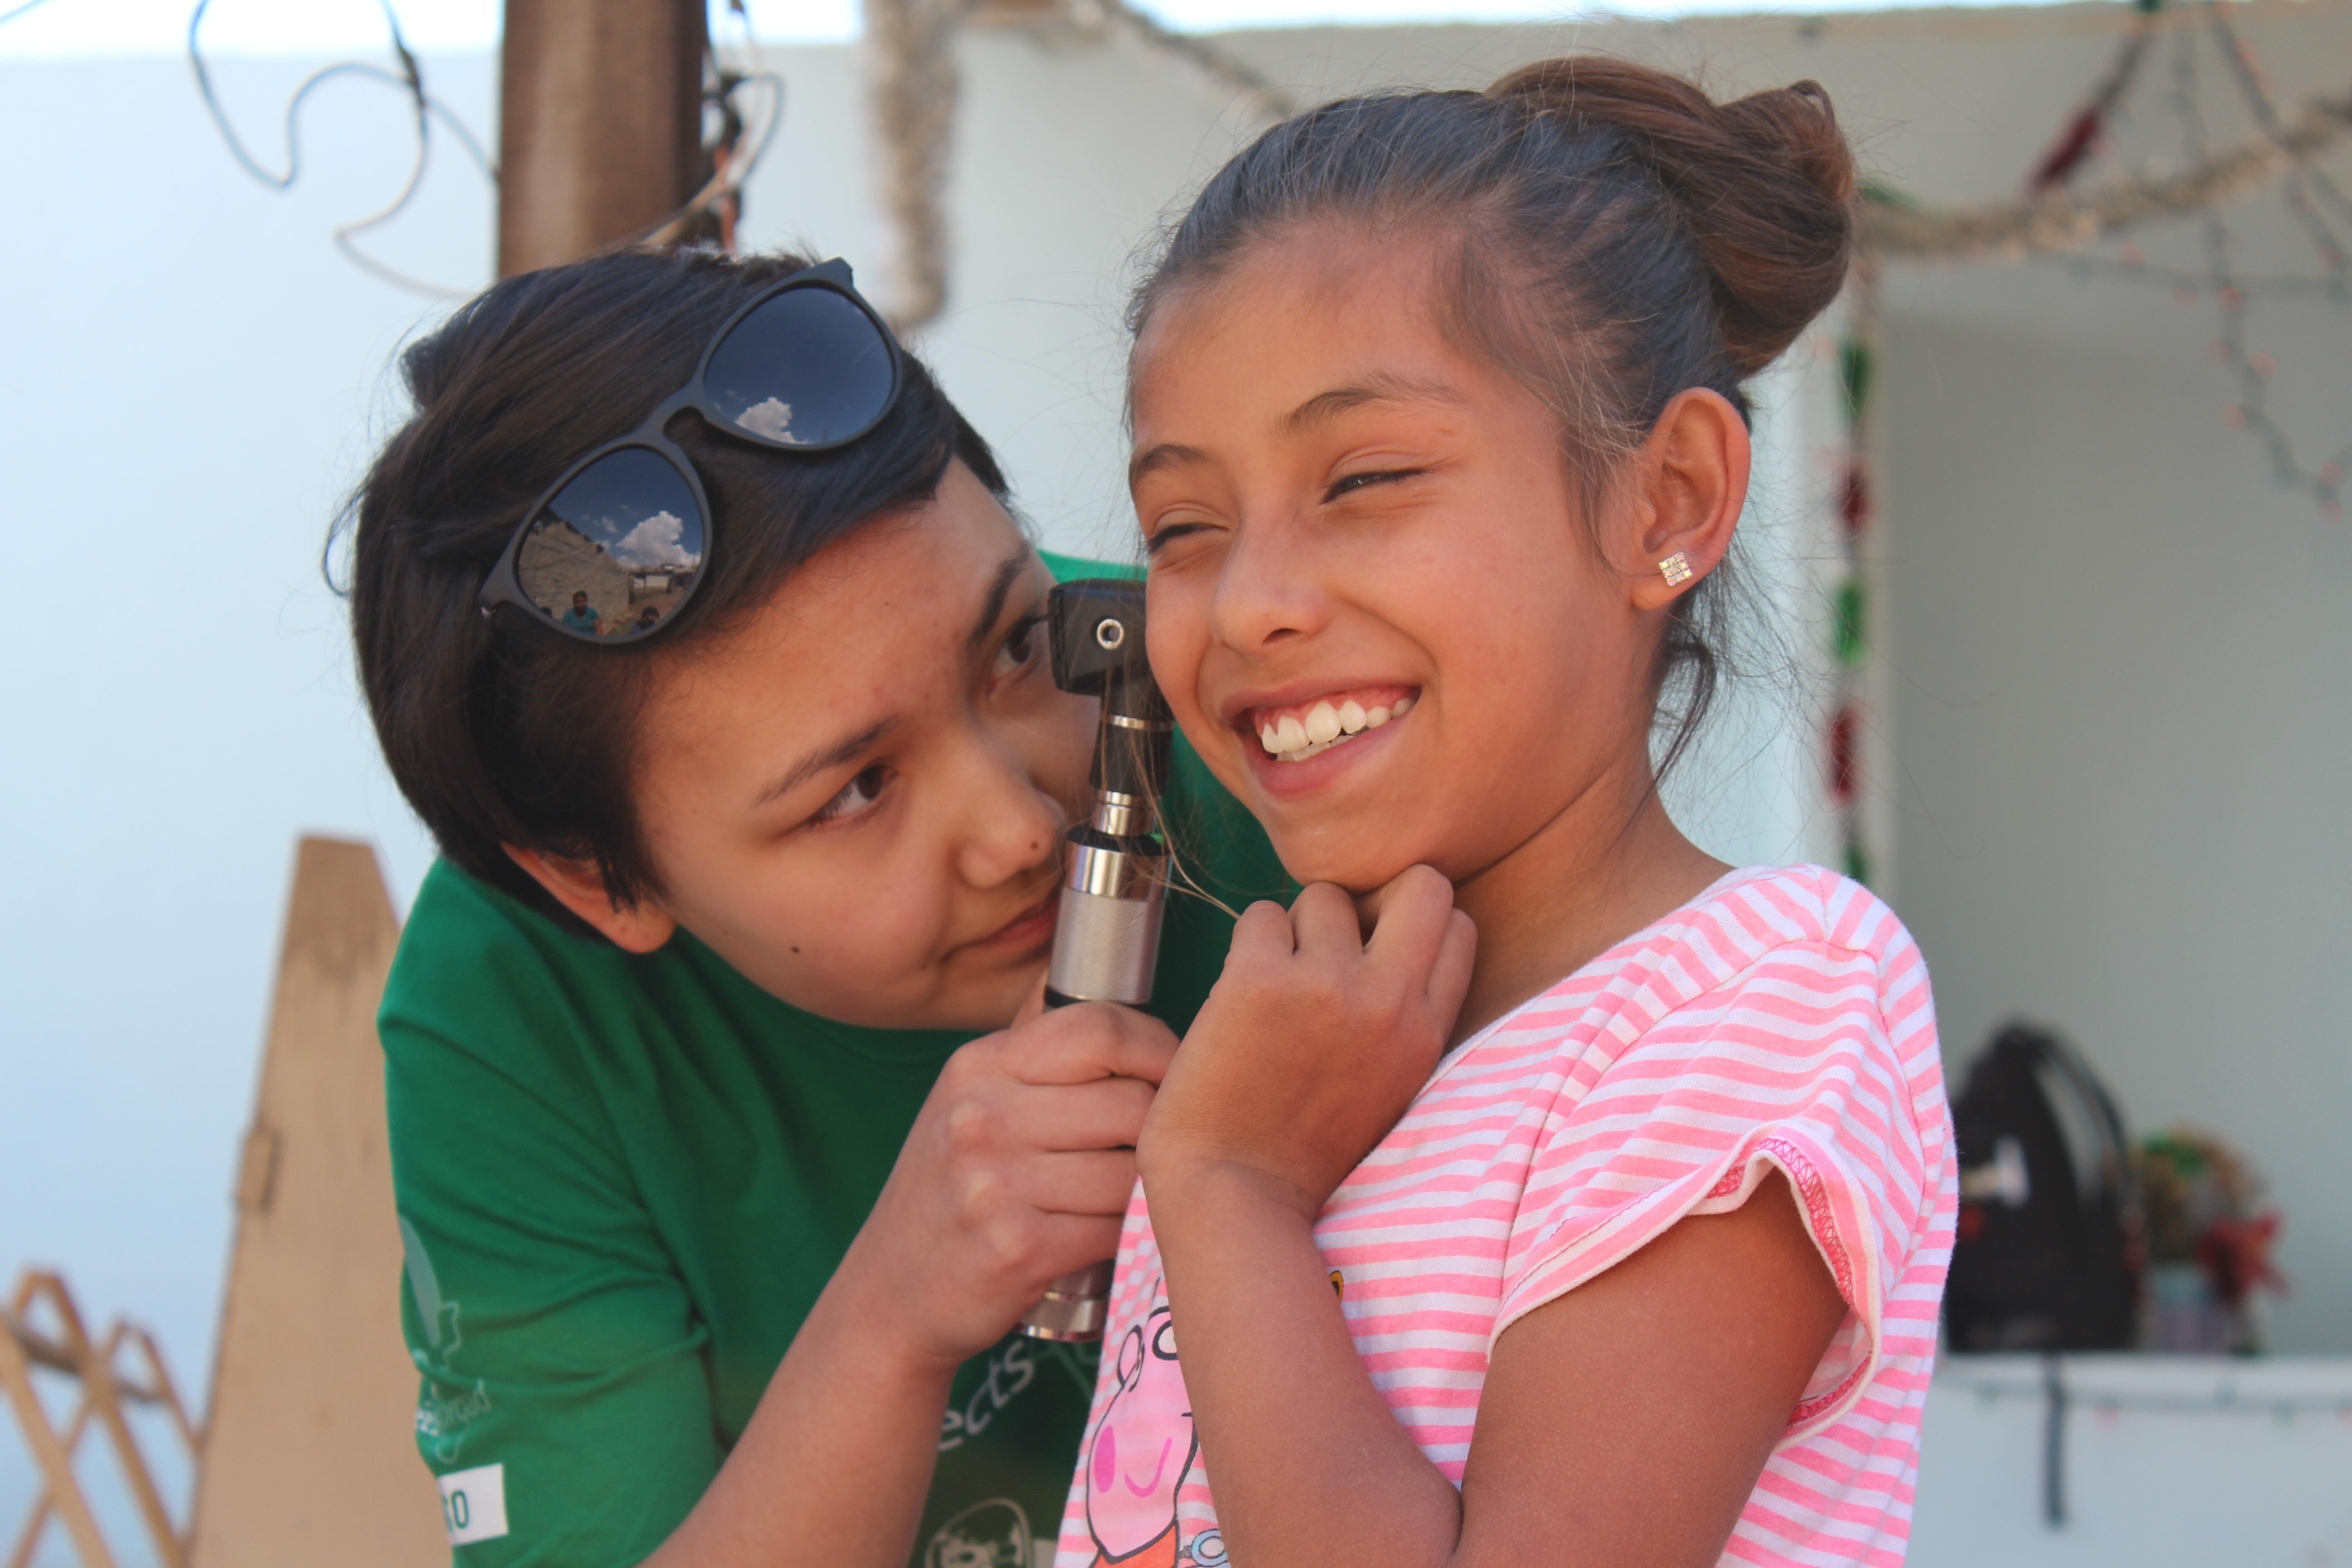 Medical Intern examines a young patients ear during a Medical Community Outreach Day in Mexico.